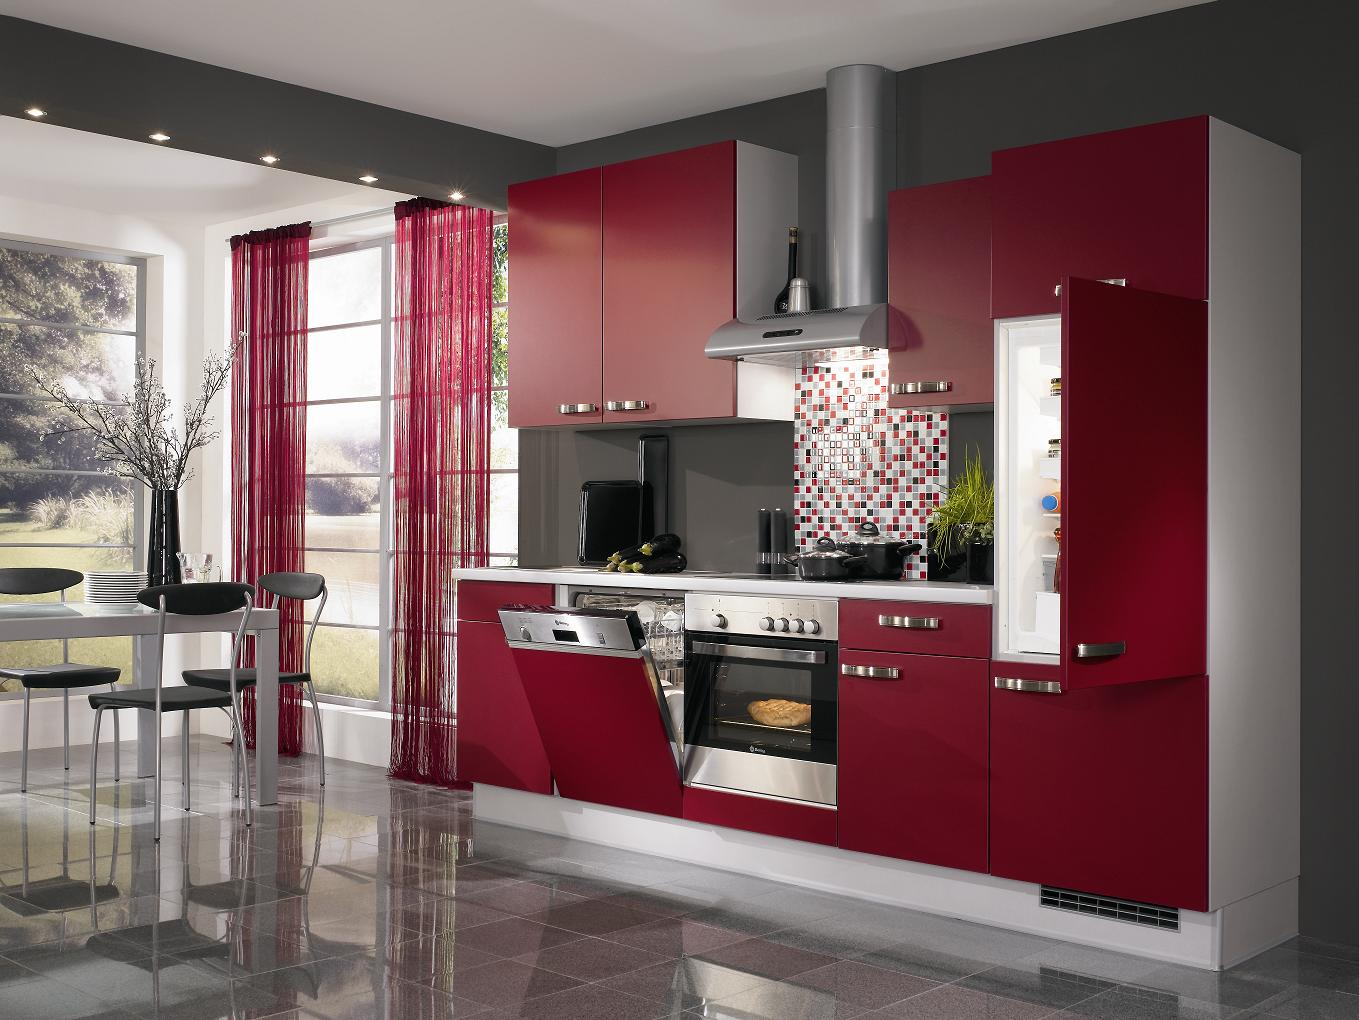 Stylish Kitchen Cabinets Modern Gorgeous Kitchen Cabinets Ipc186 Modern Kitchen Design